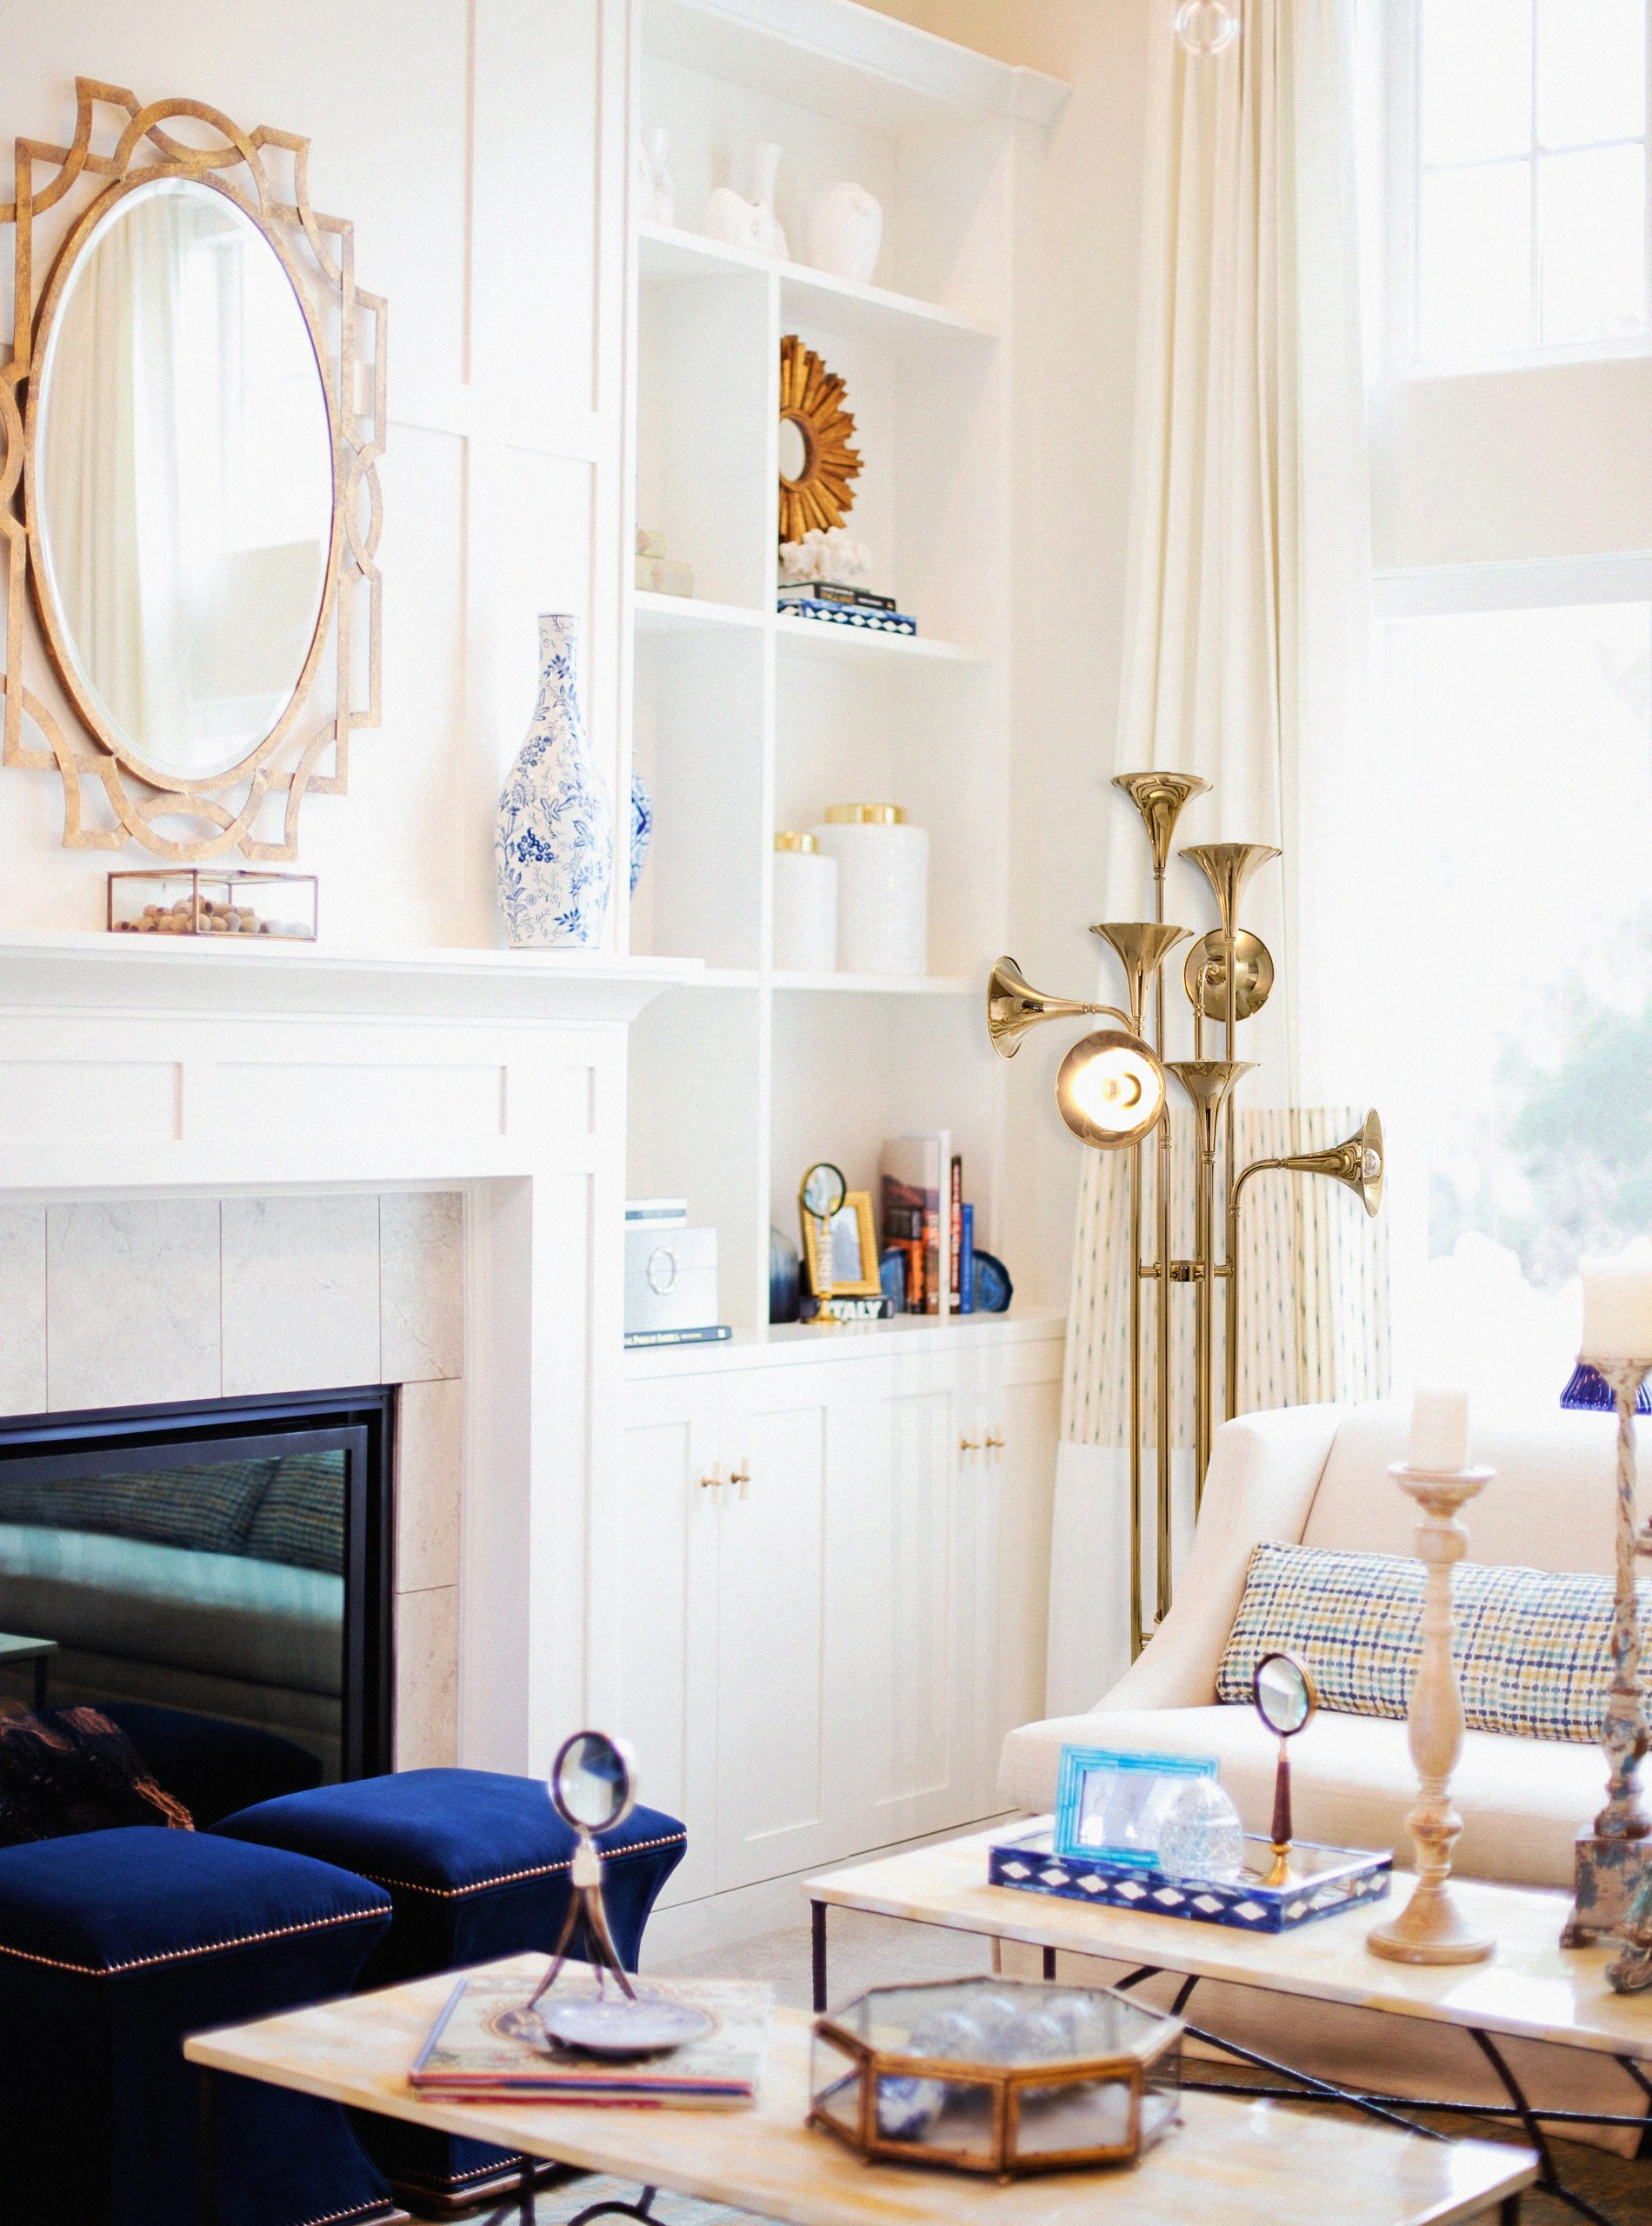 Summer Sales: These 6 Beautiful Lighting Pieces are The Epitome of Modern Mid-Century Style! lighting pieces Summer Sales: These 6 Beautiful Lighting Pieces are The Epitome of Modern Mid-Century Style! 6 scaled